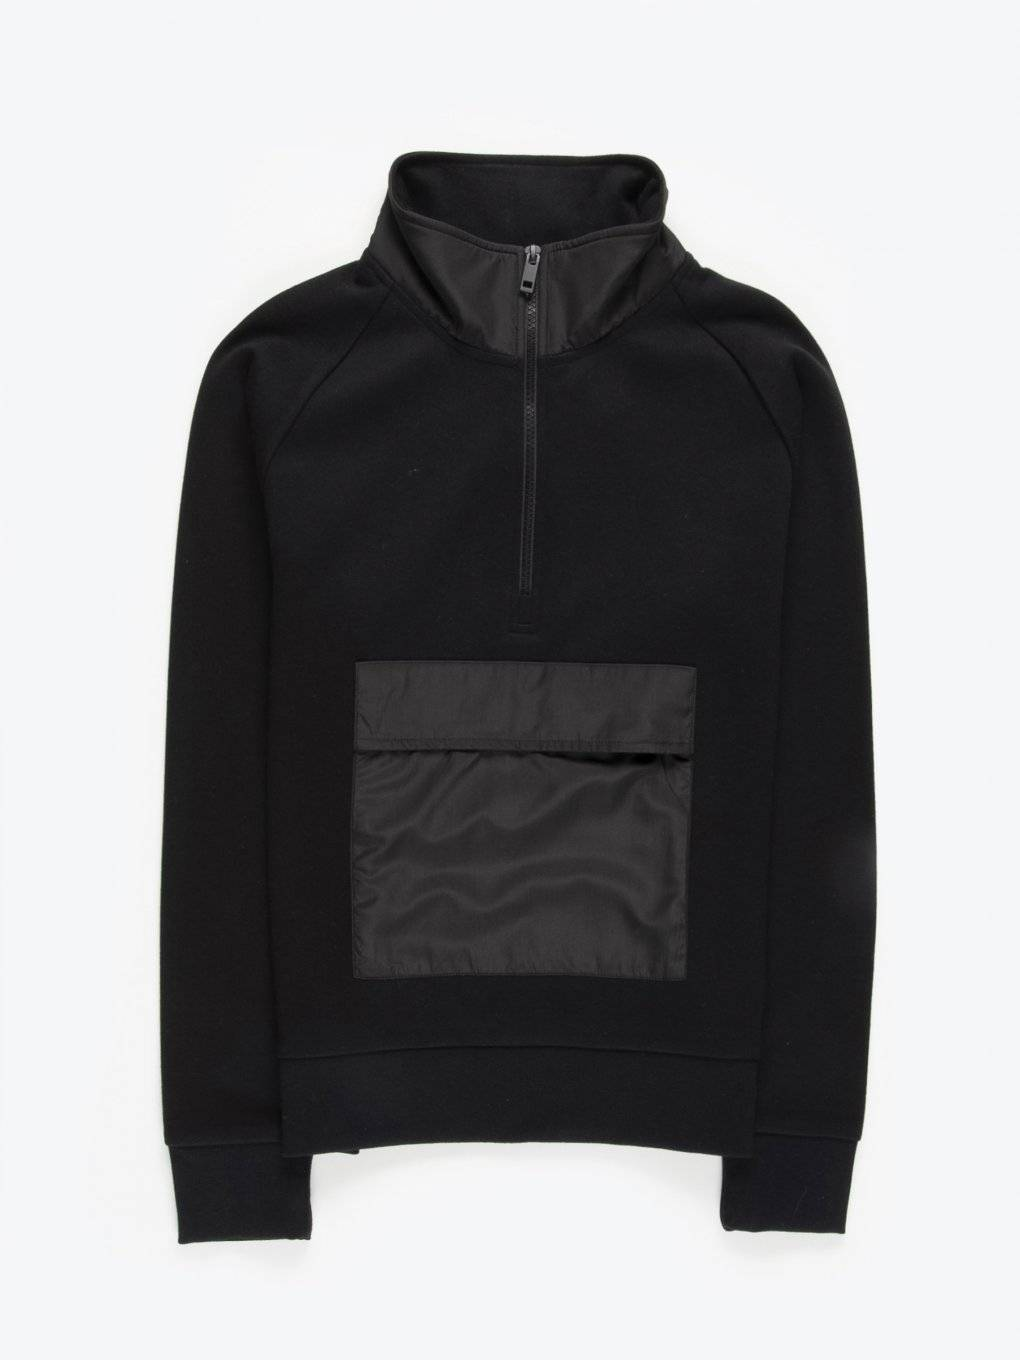 Zip up sweatshirt with pocket